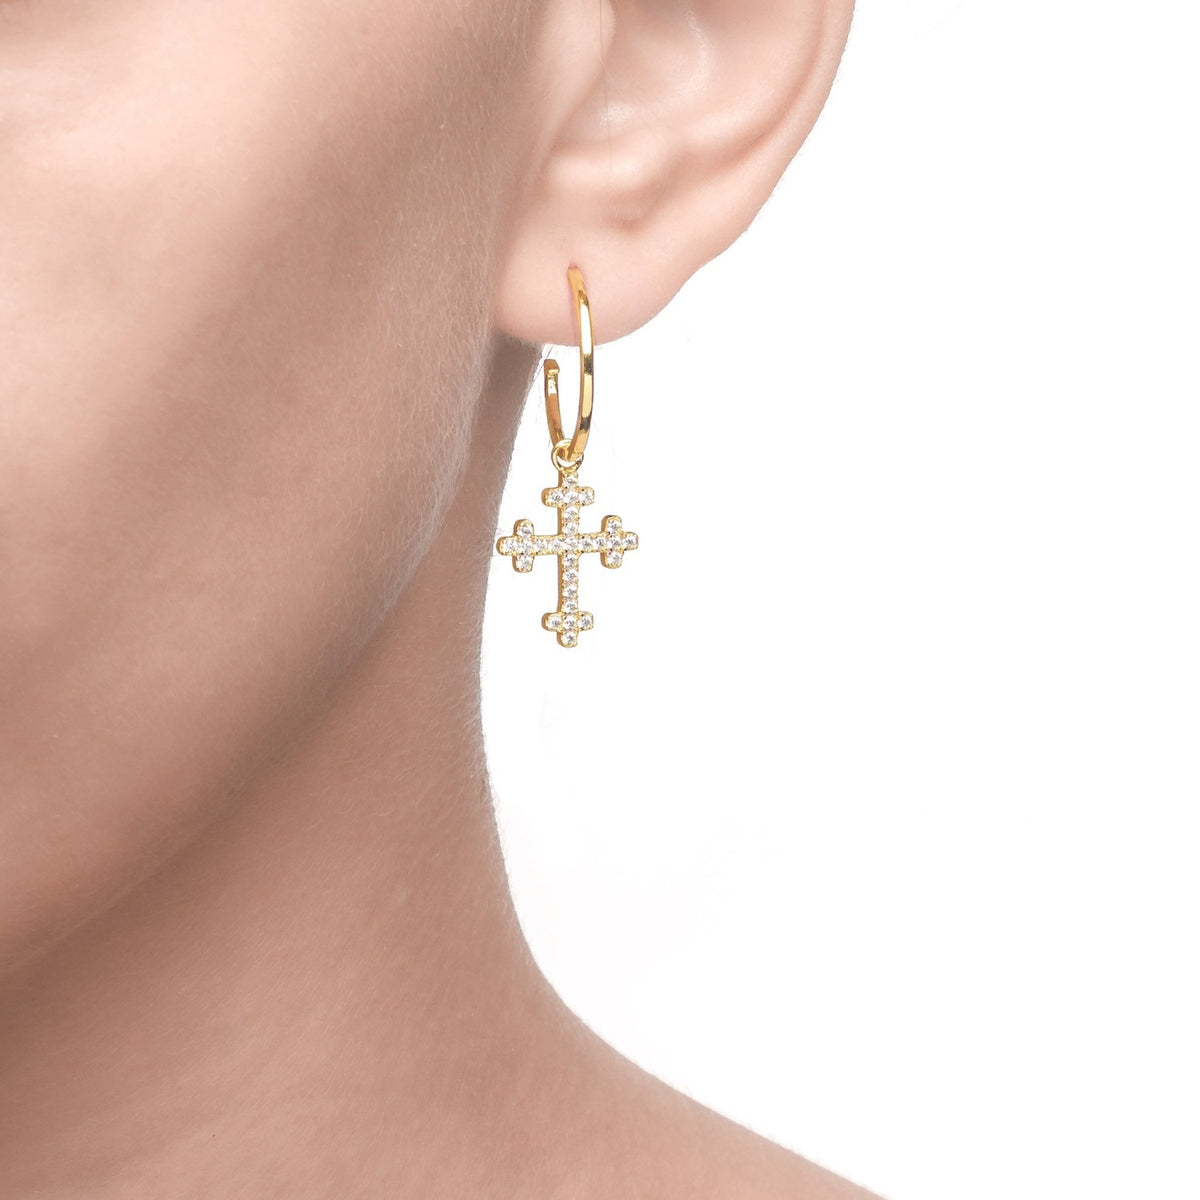 Fortuna | Brindisi Earrings | 925 Silver | White CZ | 18K Gold Plated